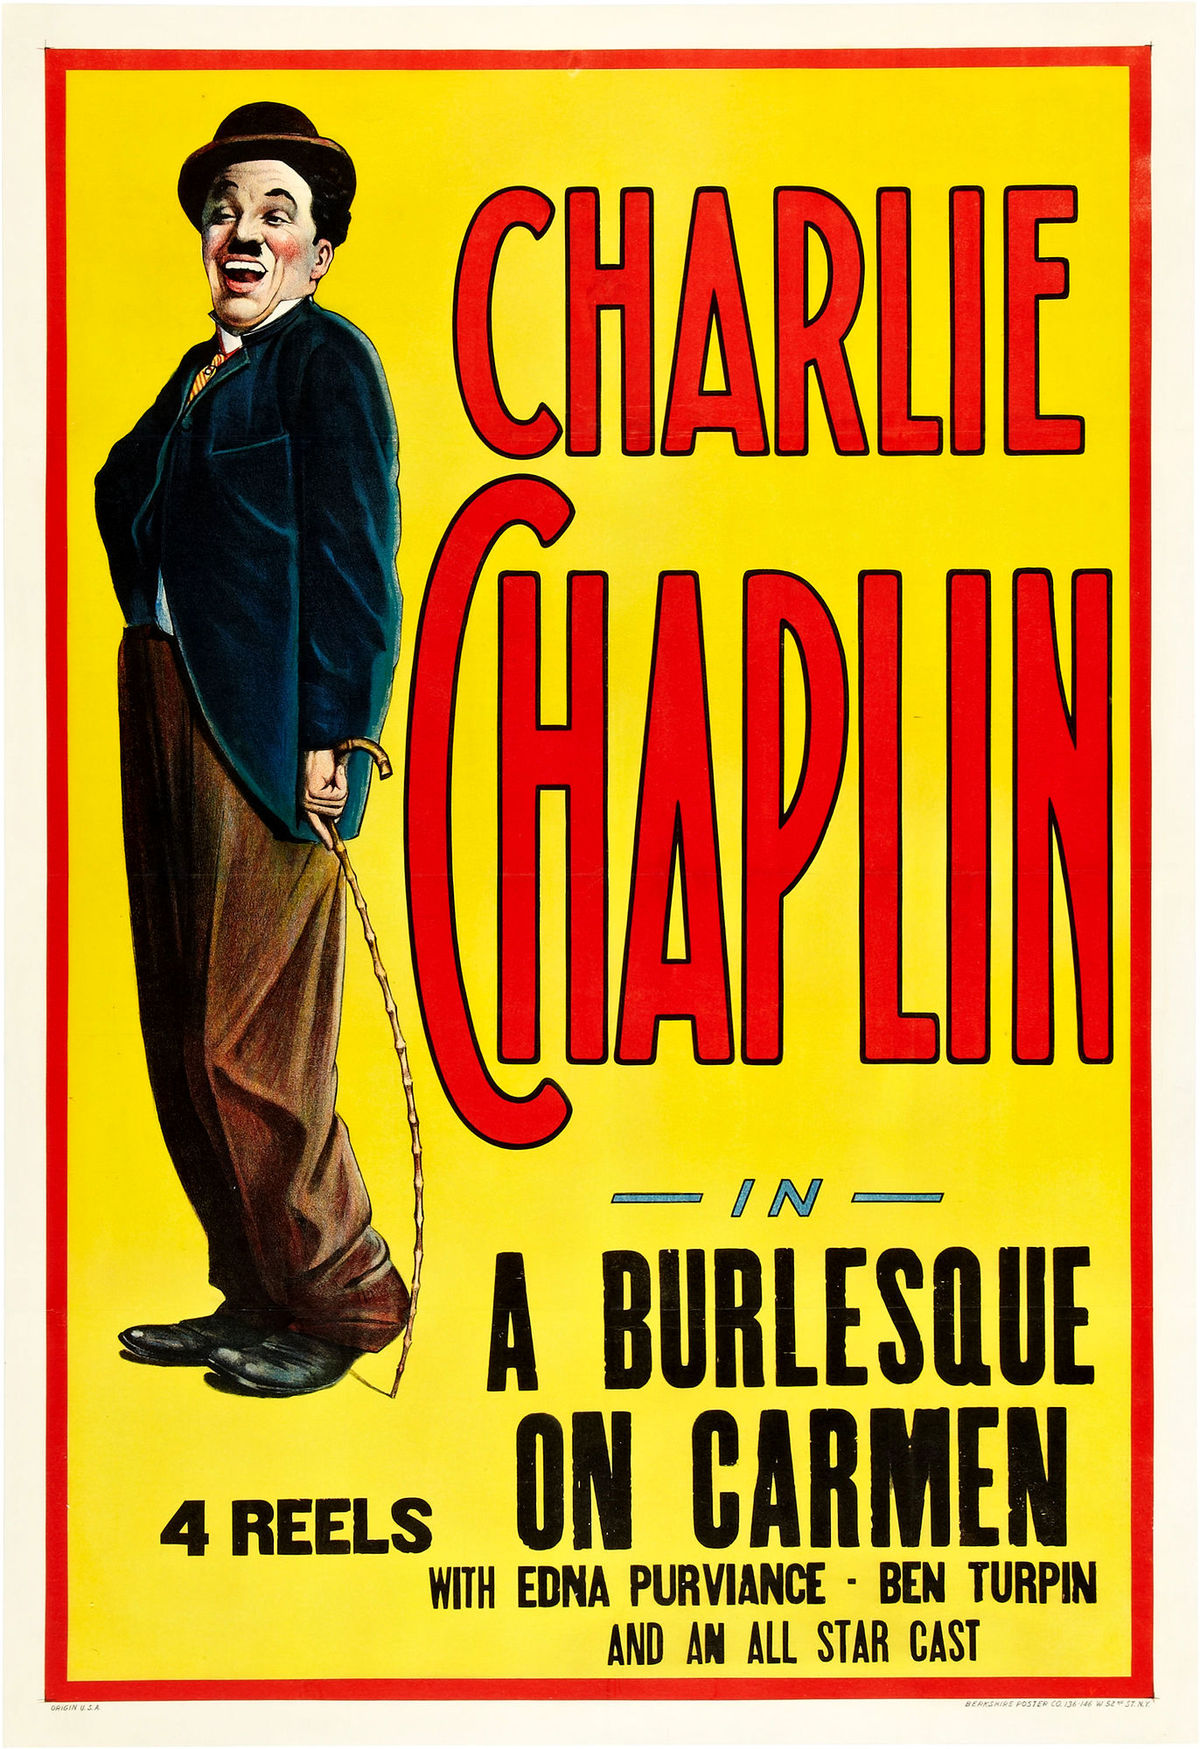 A Burlesque on Carmen (1916, Charlie Chaplin) US poster